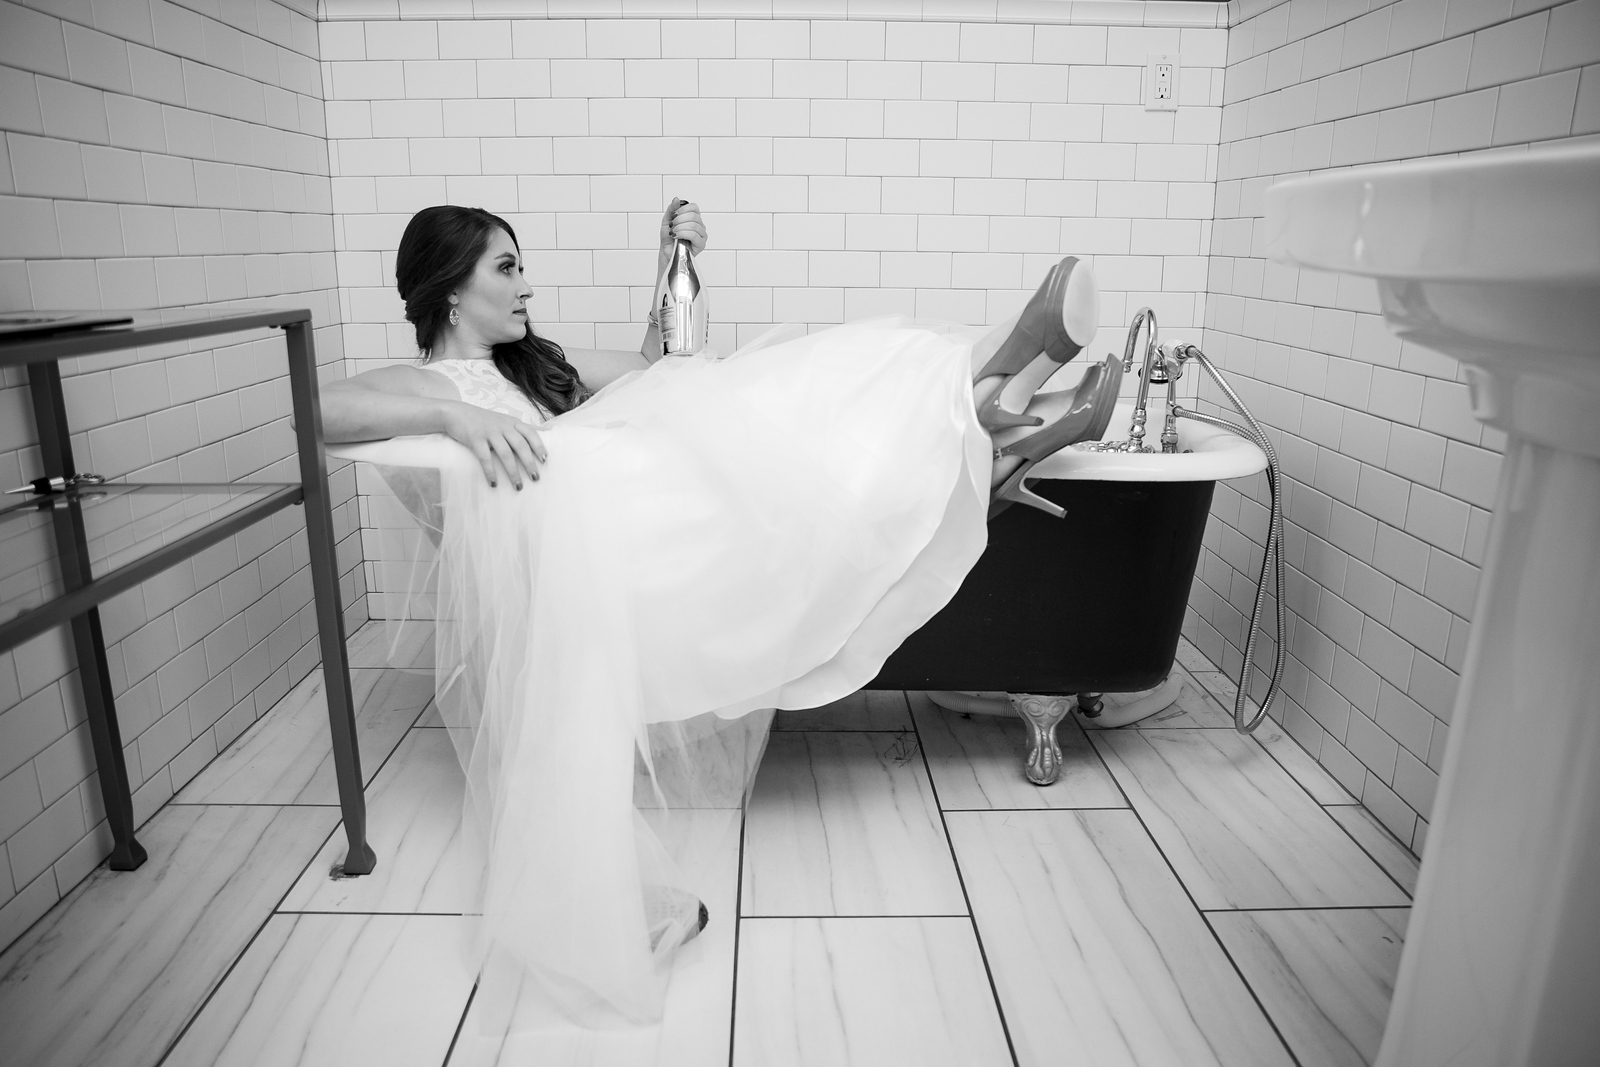 black and white photo of a bride in a bathtub holding a bottle of wine